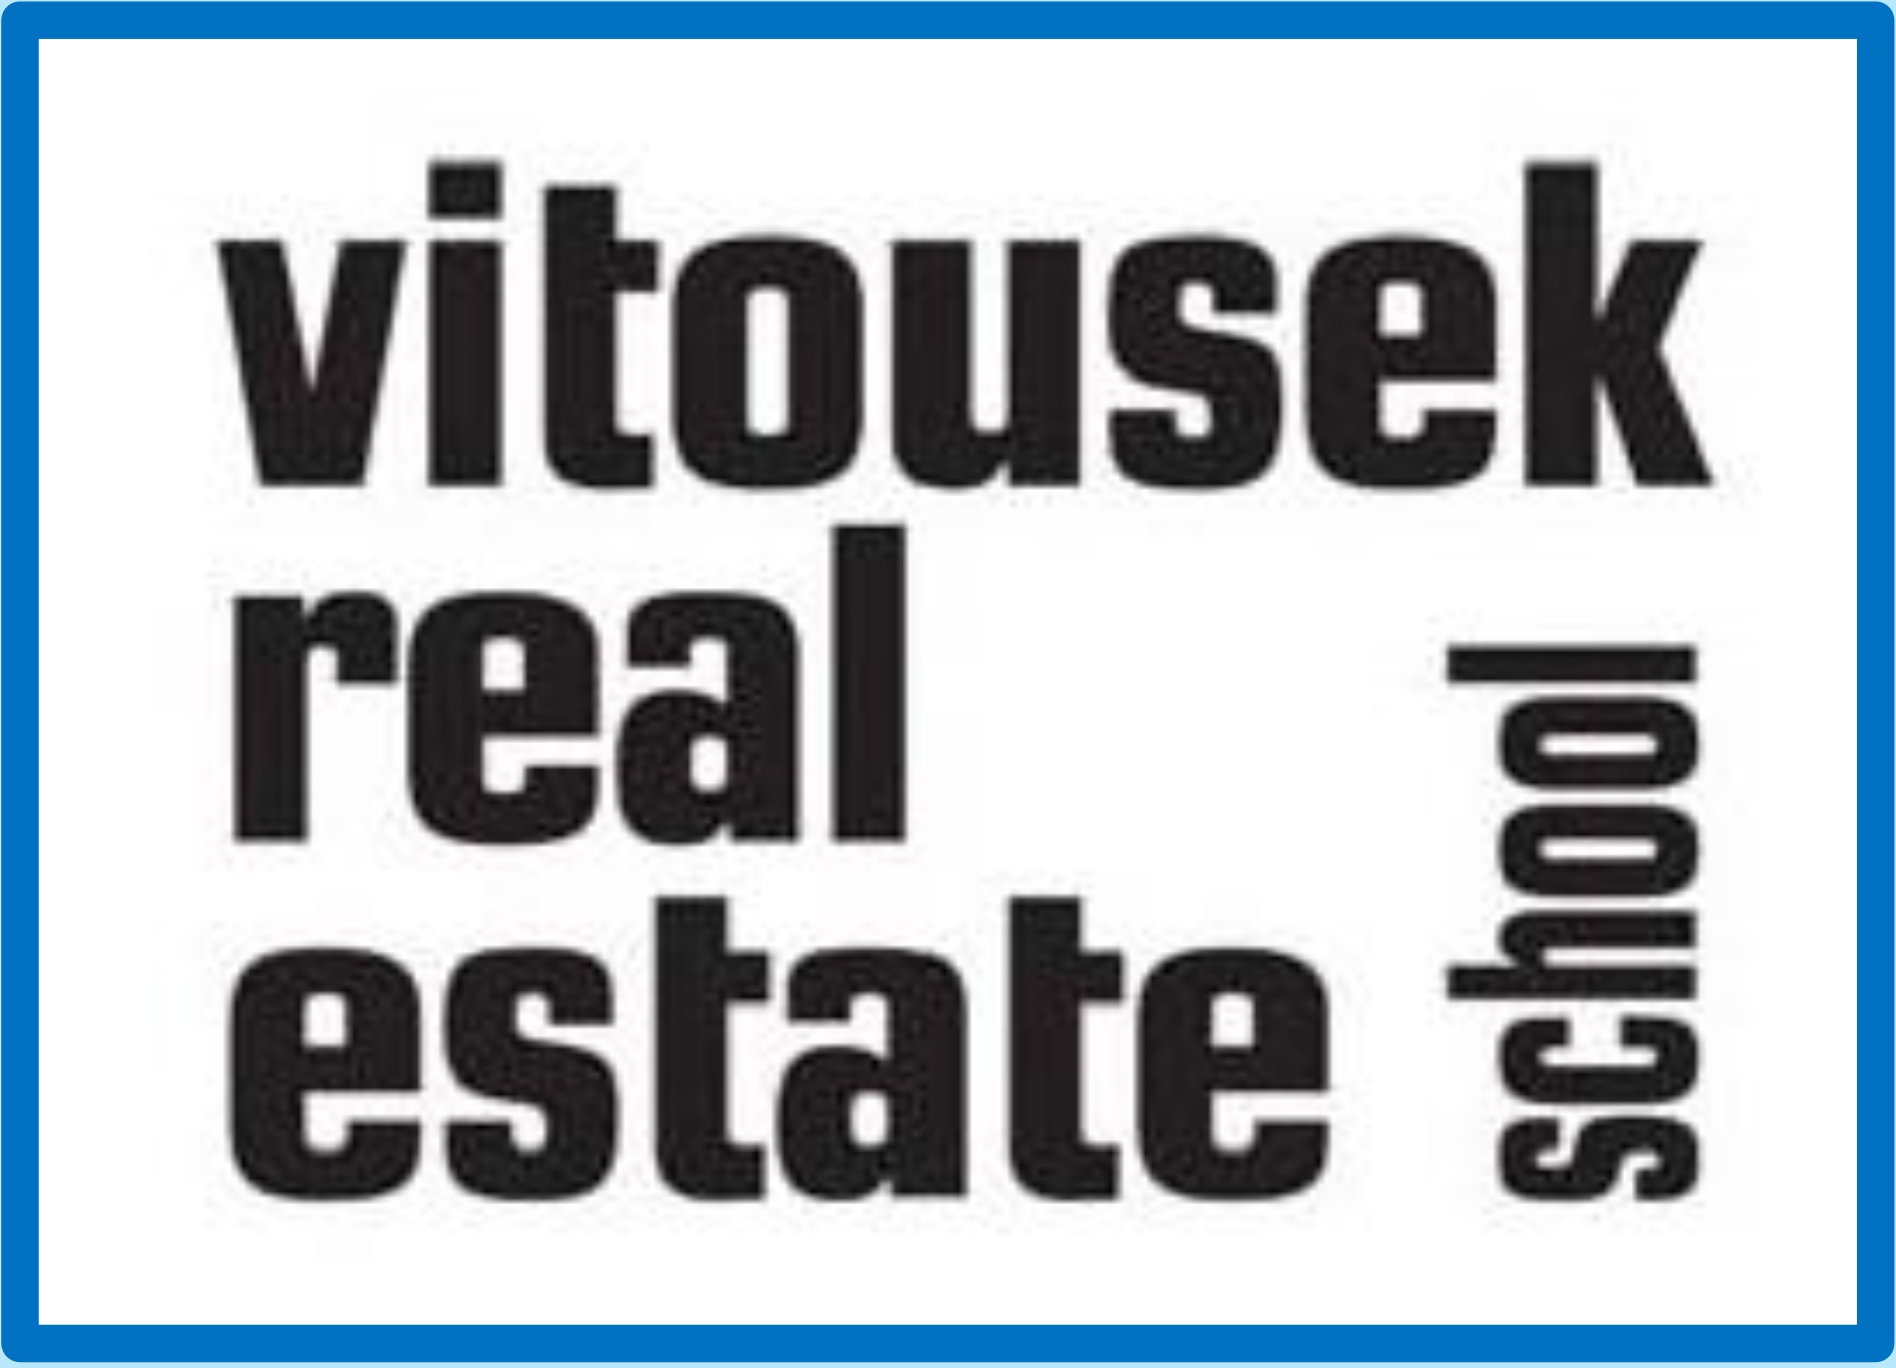 Courses & Costs   Vitousek Real Estate School - See More!